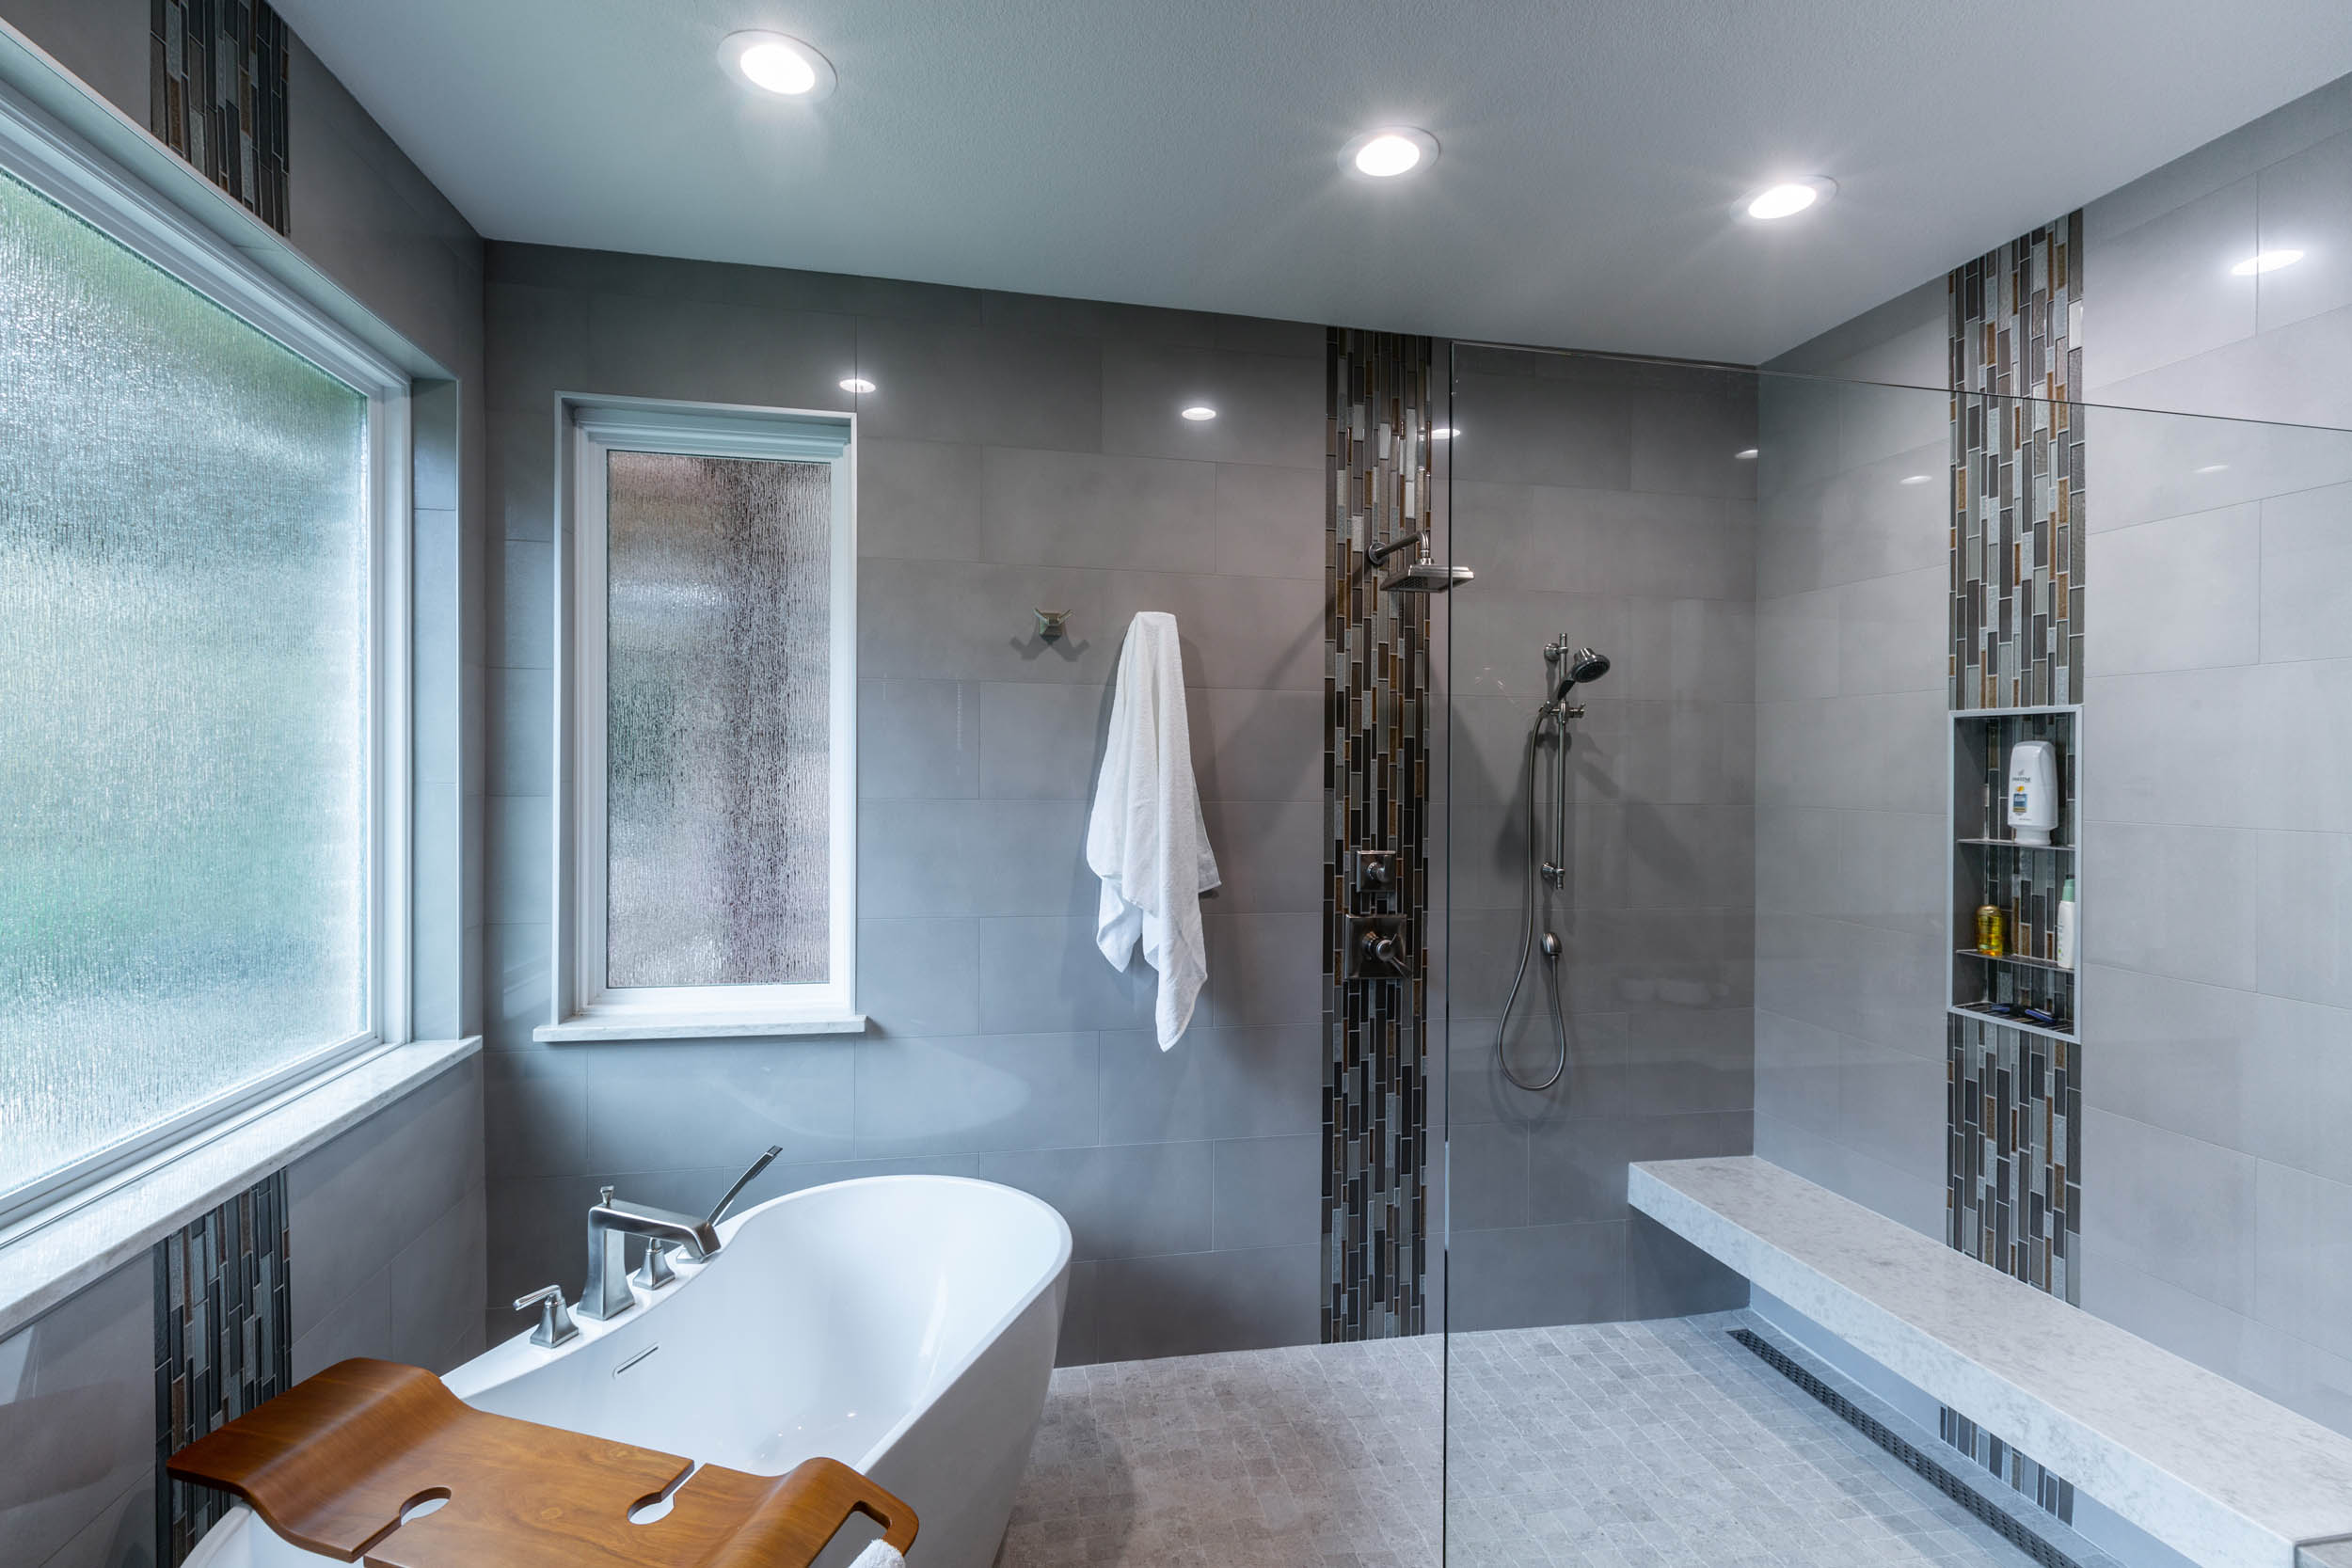 Flower mound bathroom remodel with seamless shower and bath space